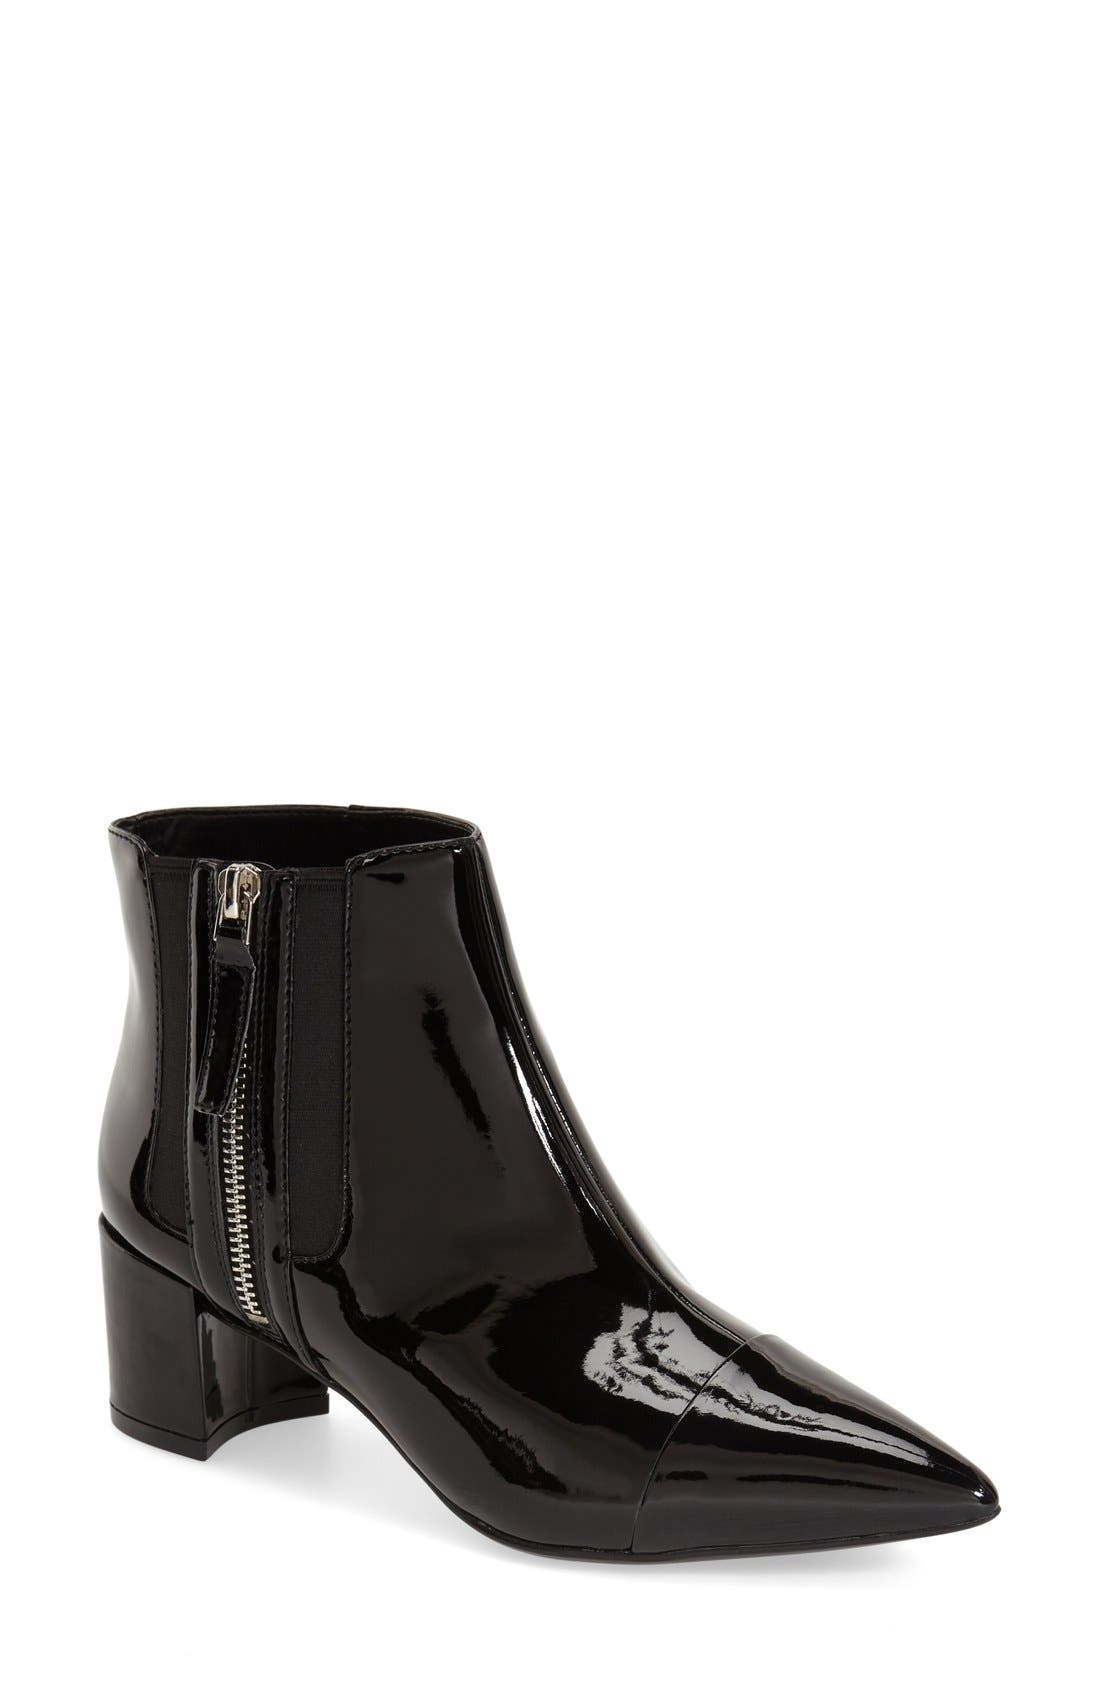 Alternate Image 1 Selected - Nine West 'Wasabi' Pointy Toe Bootie (Women)